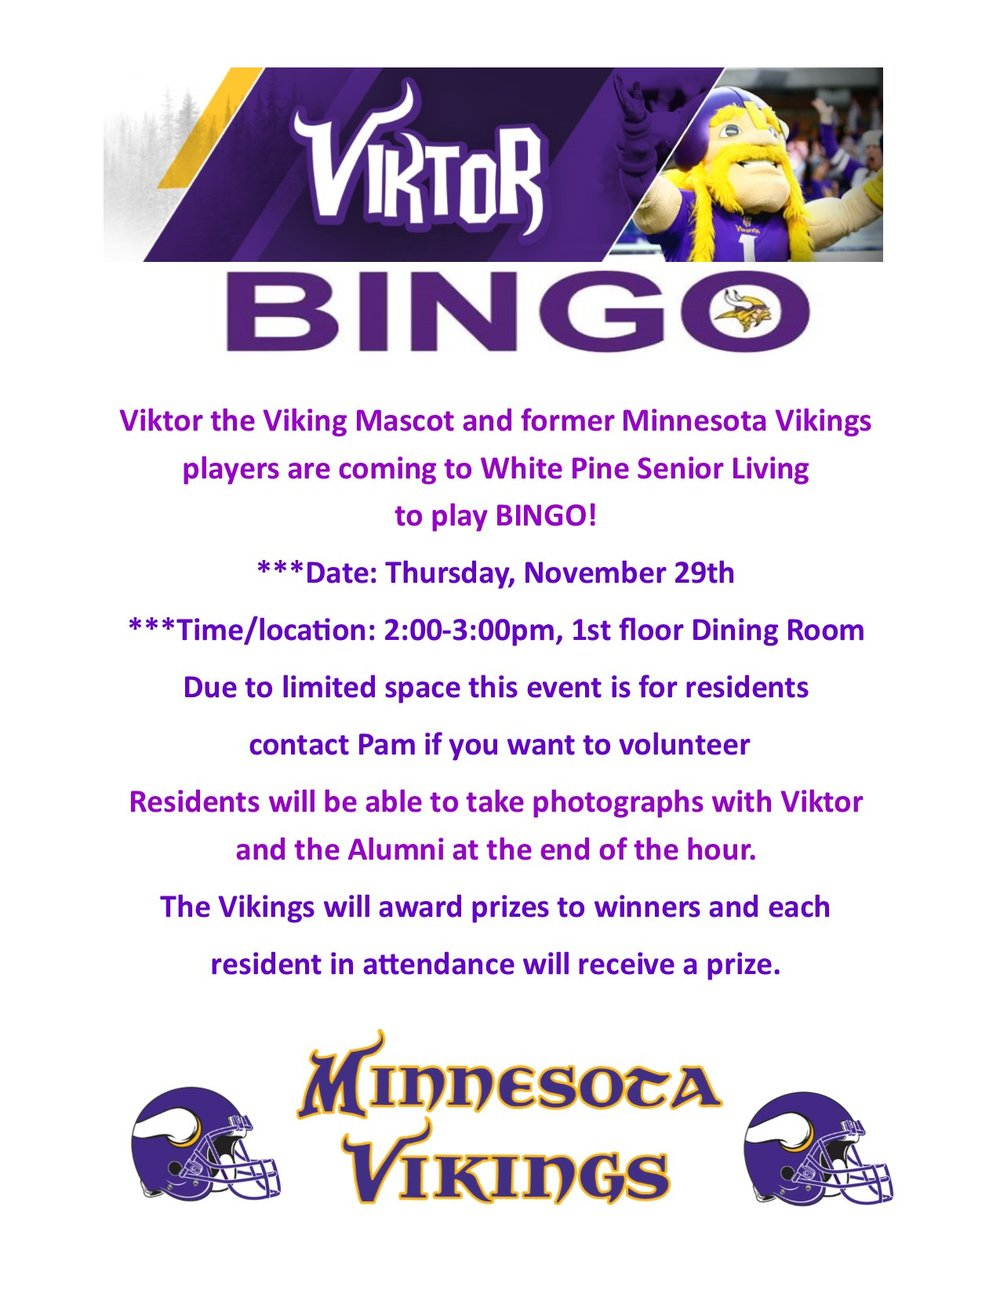 Vikings flyer2.jpg